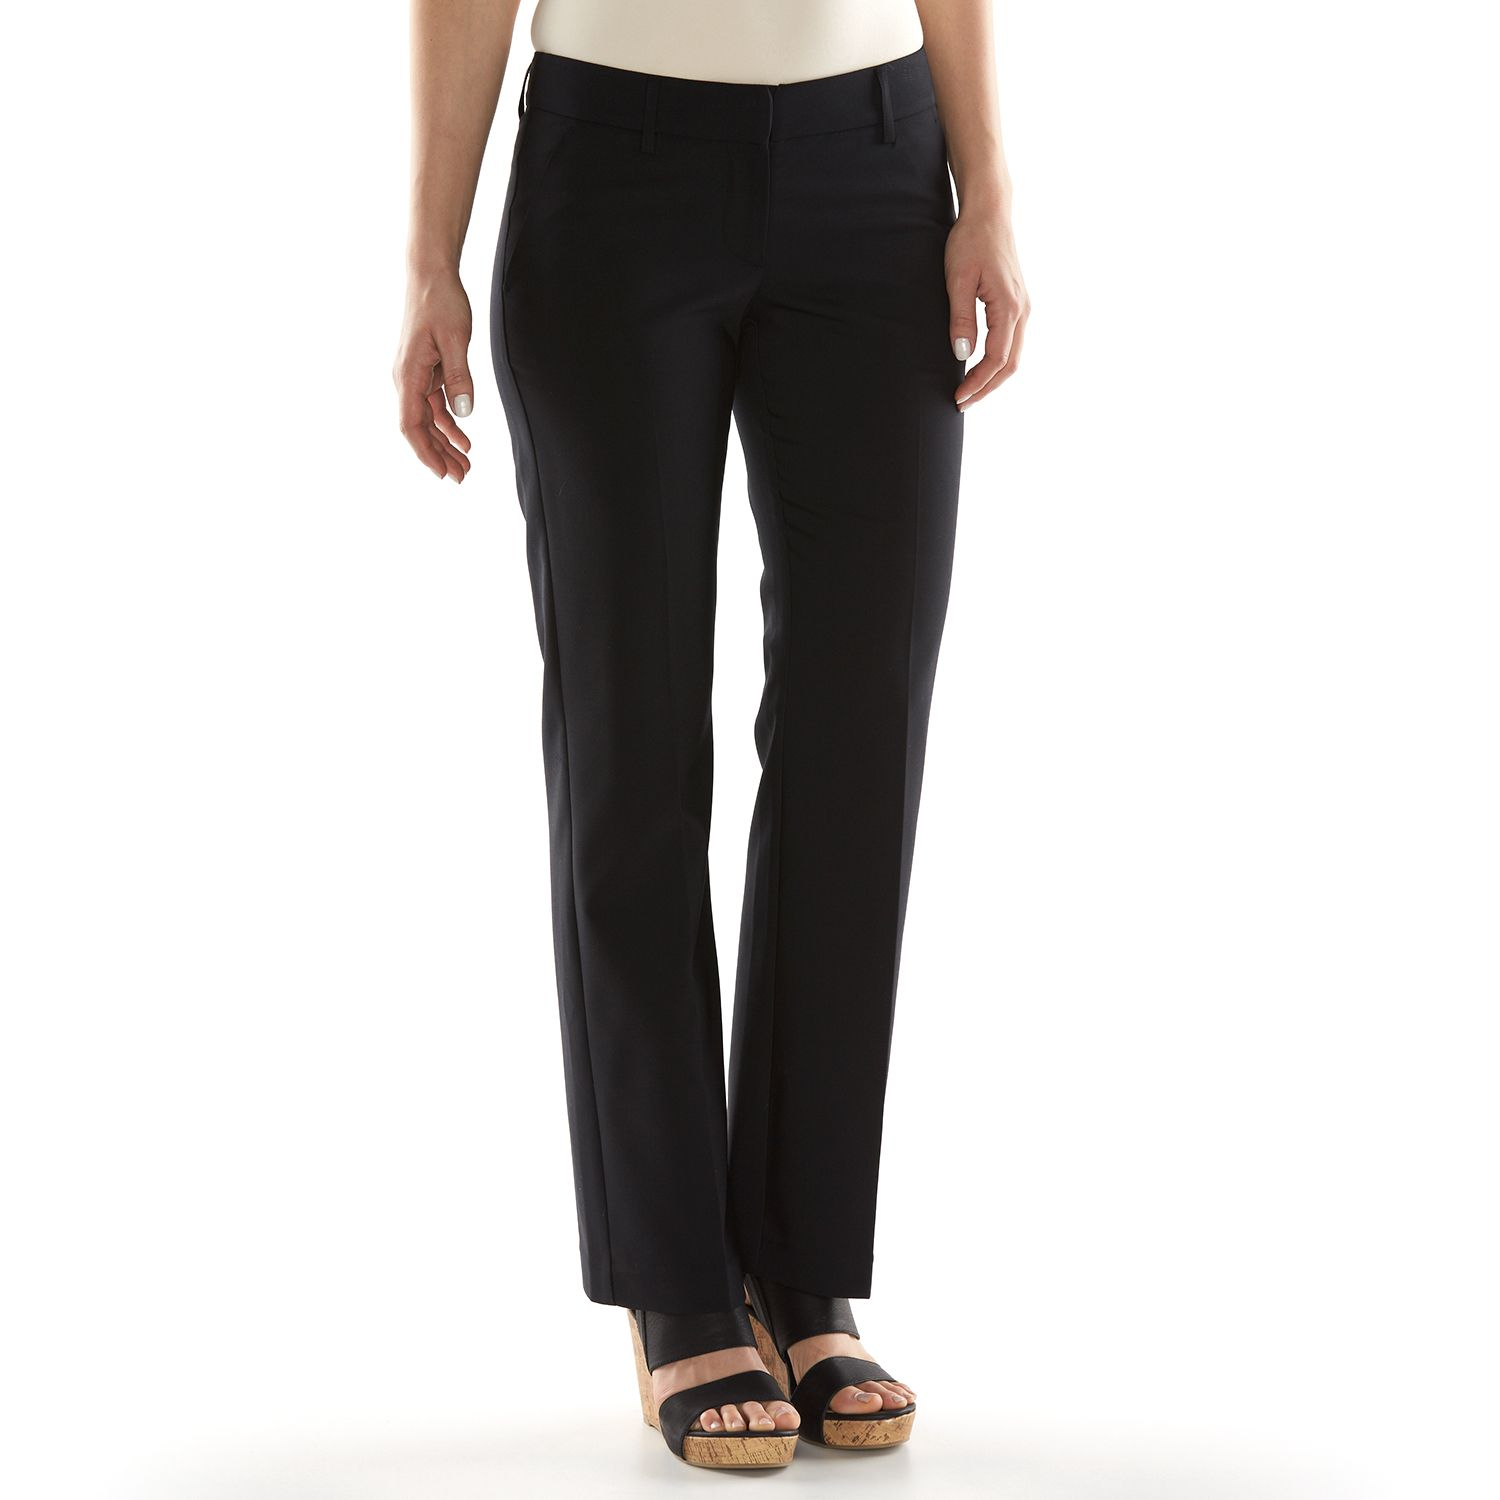 Black Dress Pants For Women hf4IBrf2